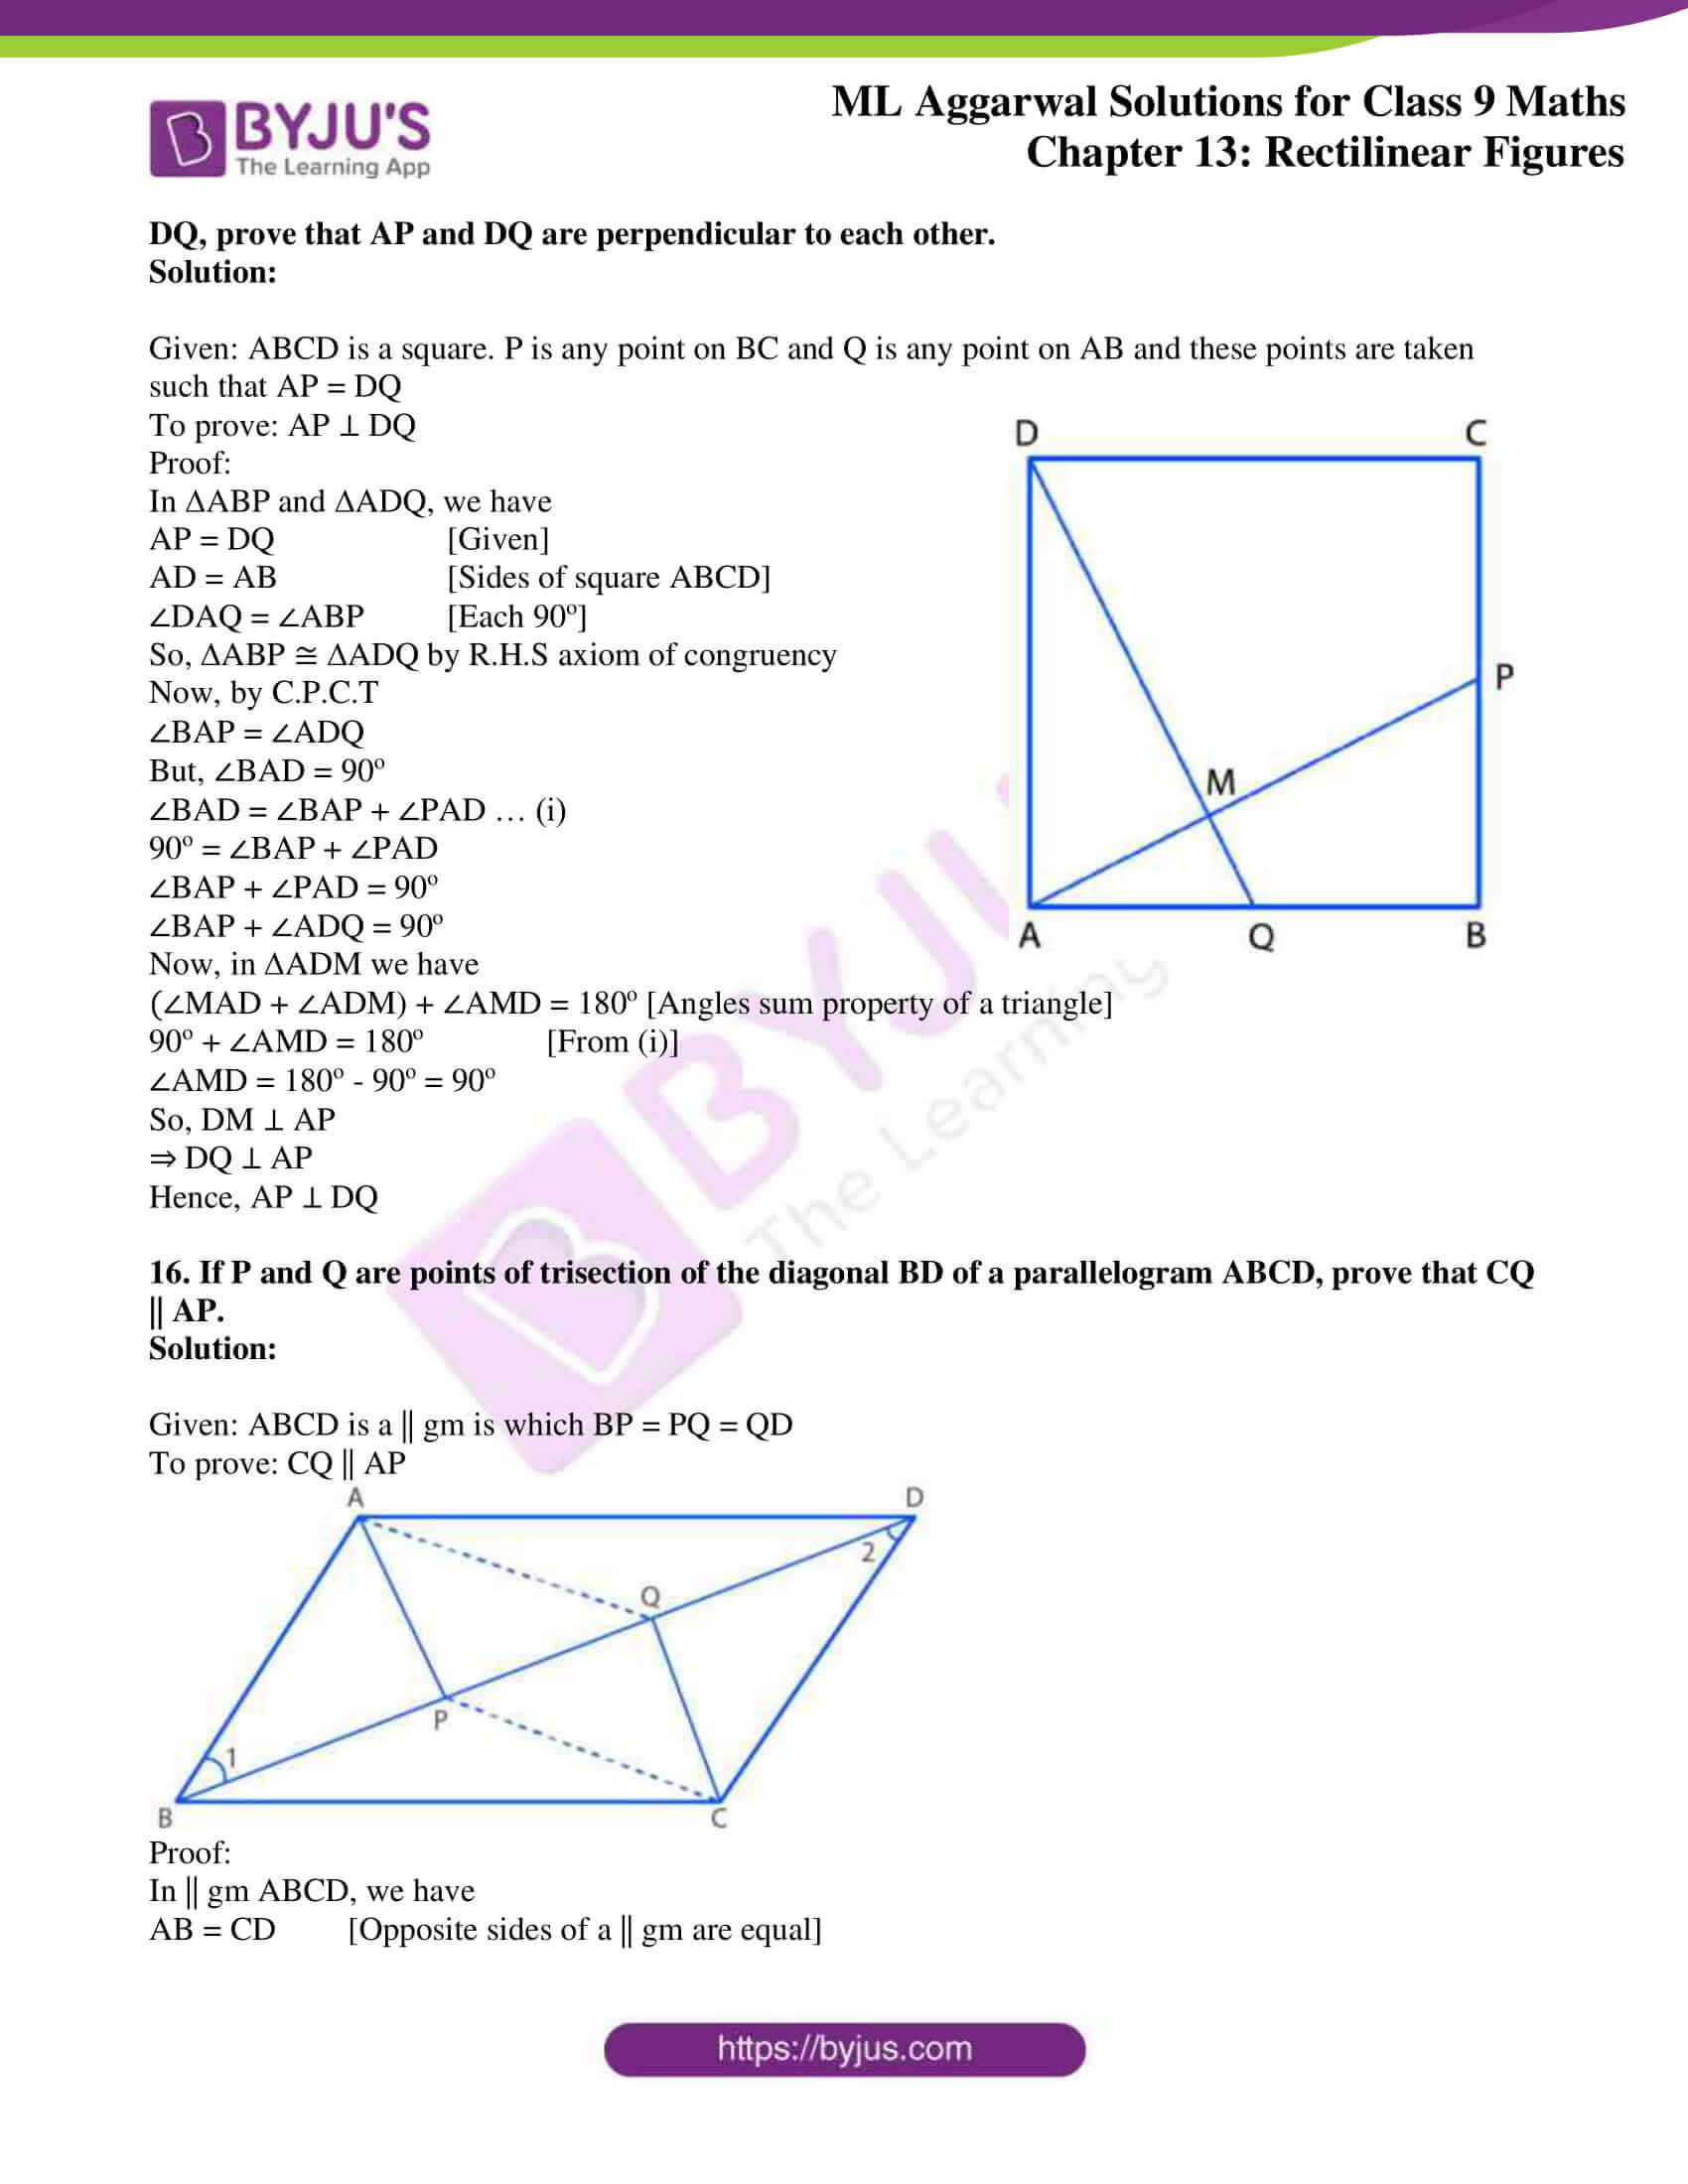 ml aggarwal solutions for class 9 maths chapter 13 15